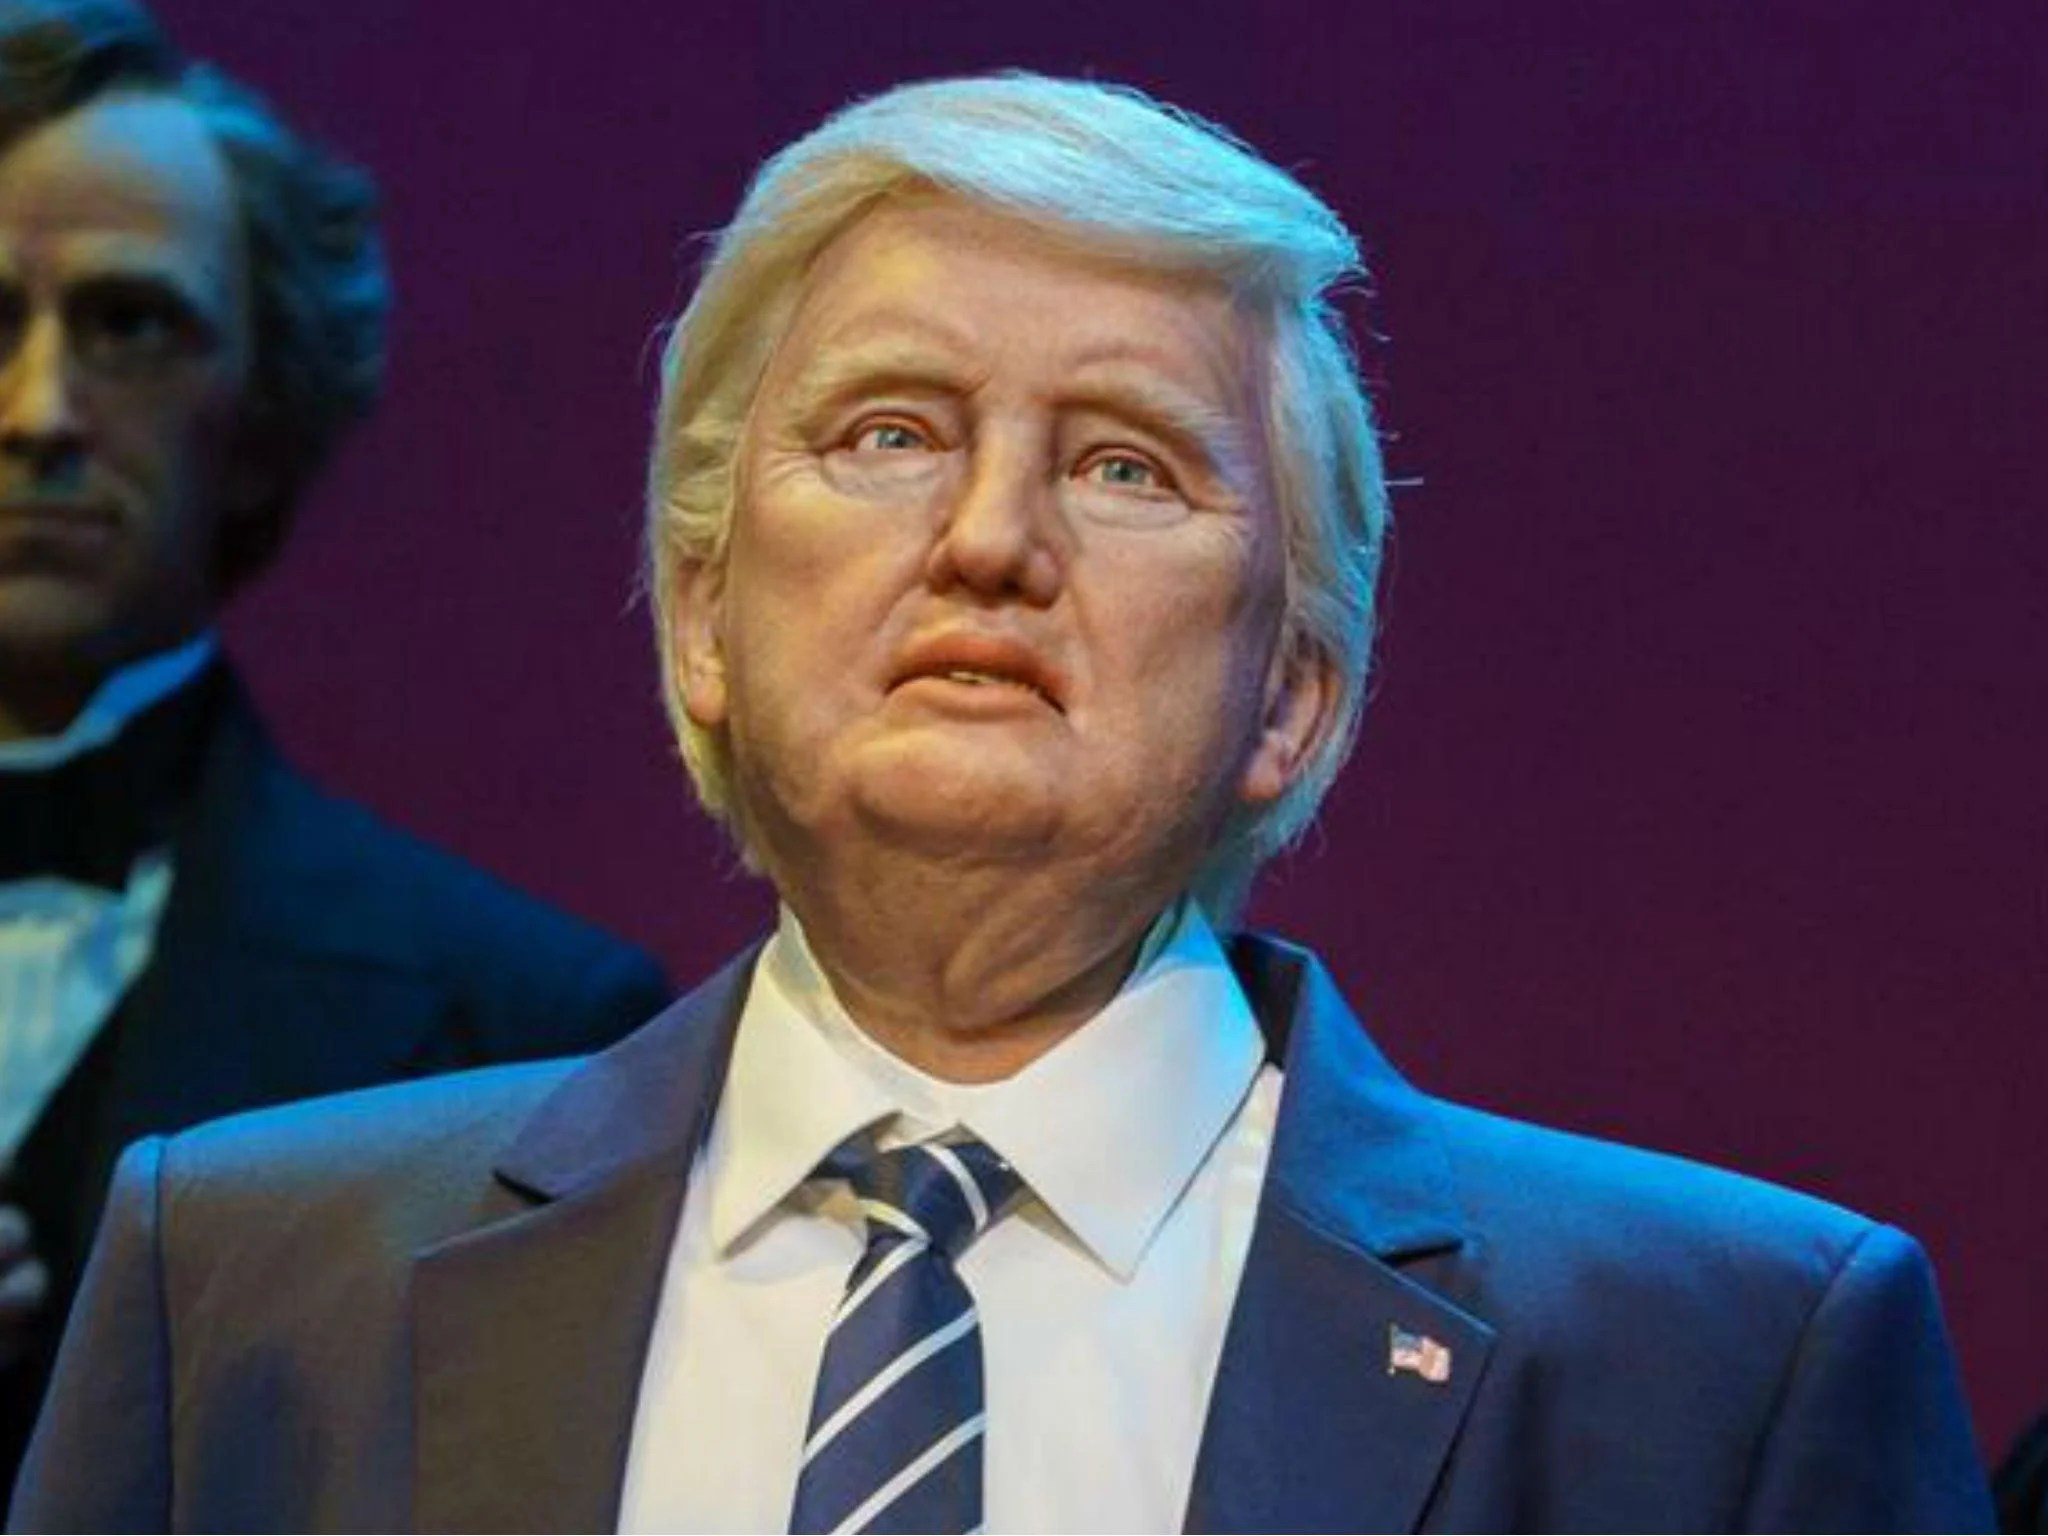 Disney unveils Donald Trump robot in  Hall of Presidents   and it     Robot President Trump at Disney s  Hall of Presidents